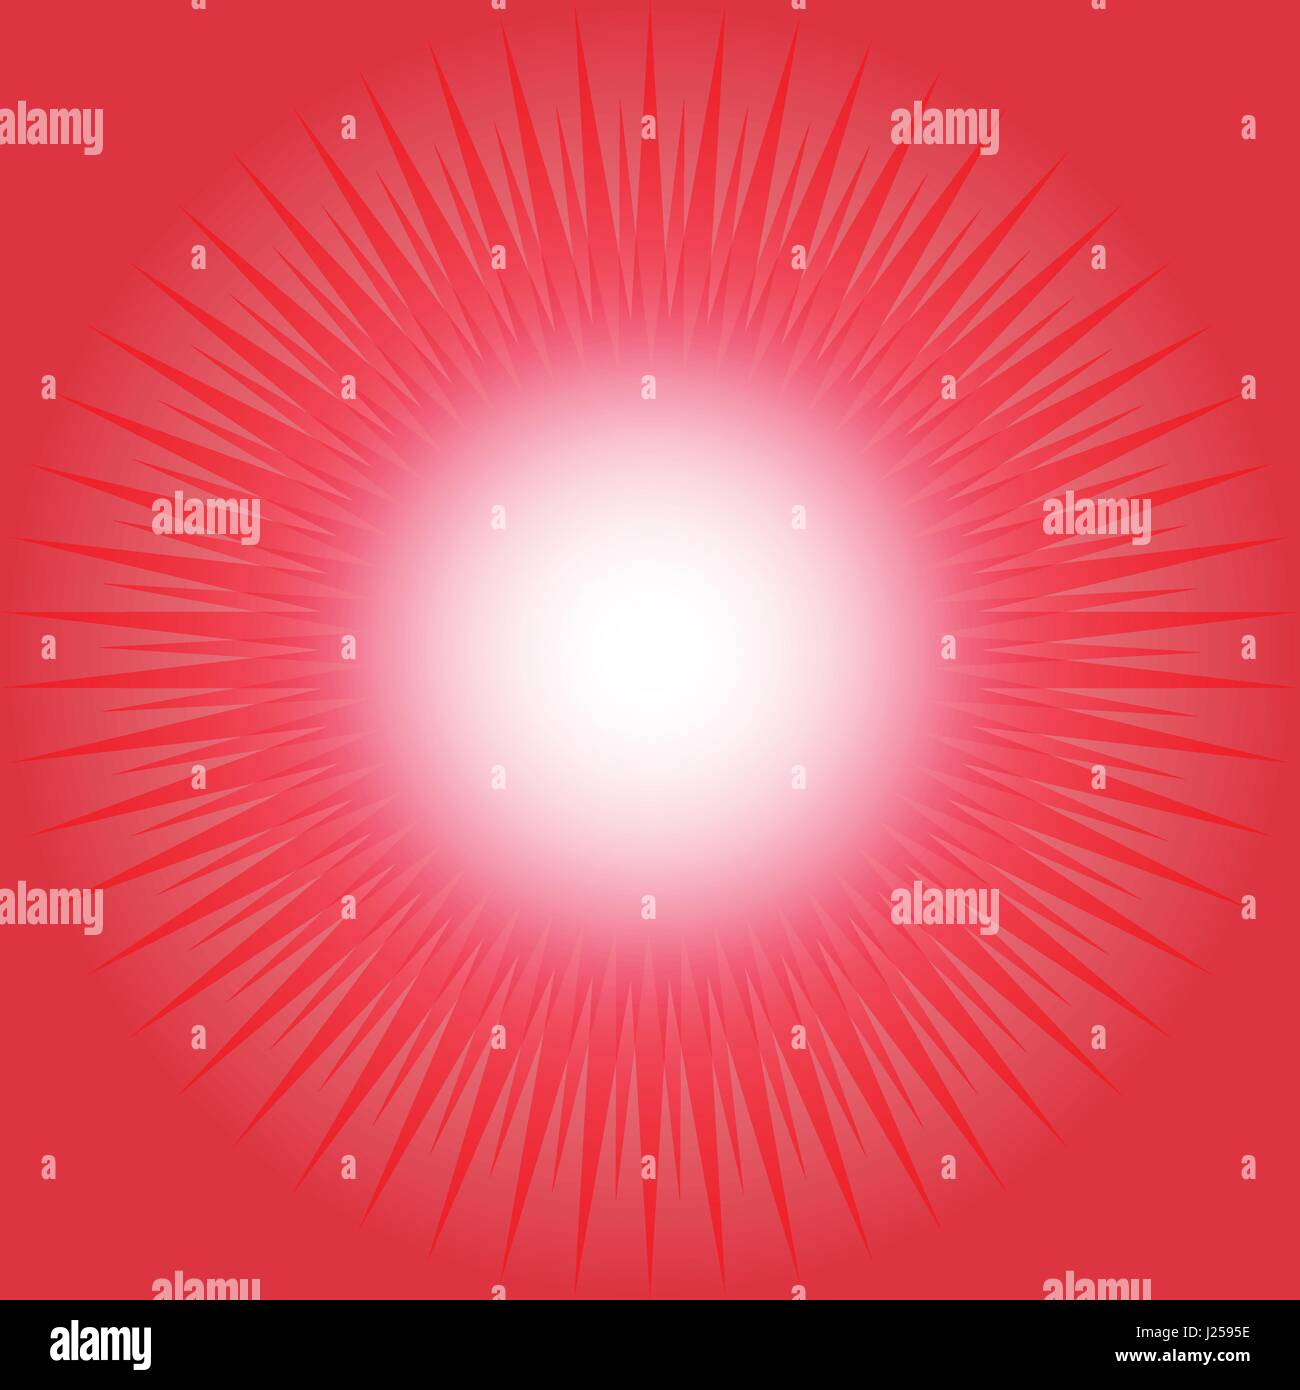 Red abstract background with star burst concept - Stock Image